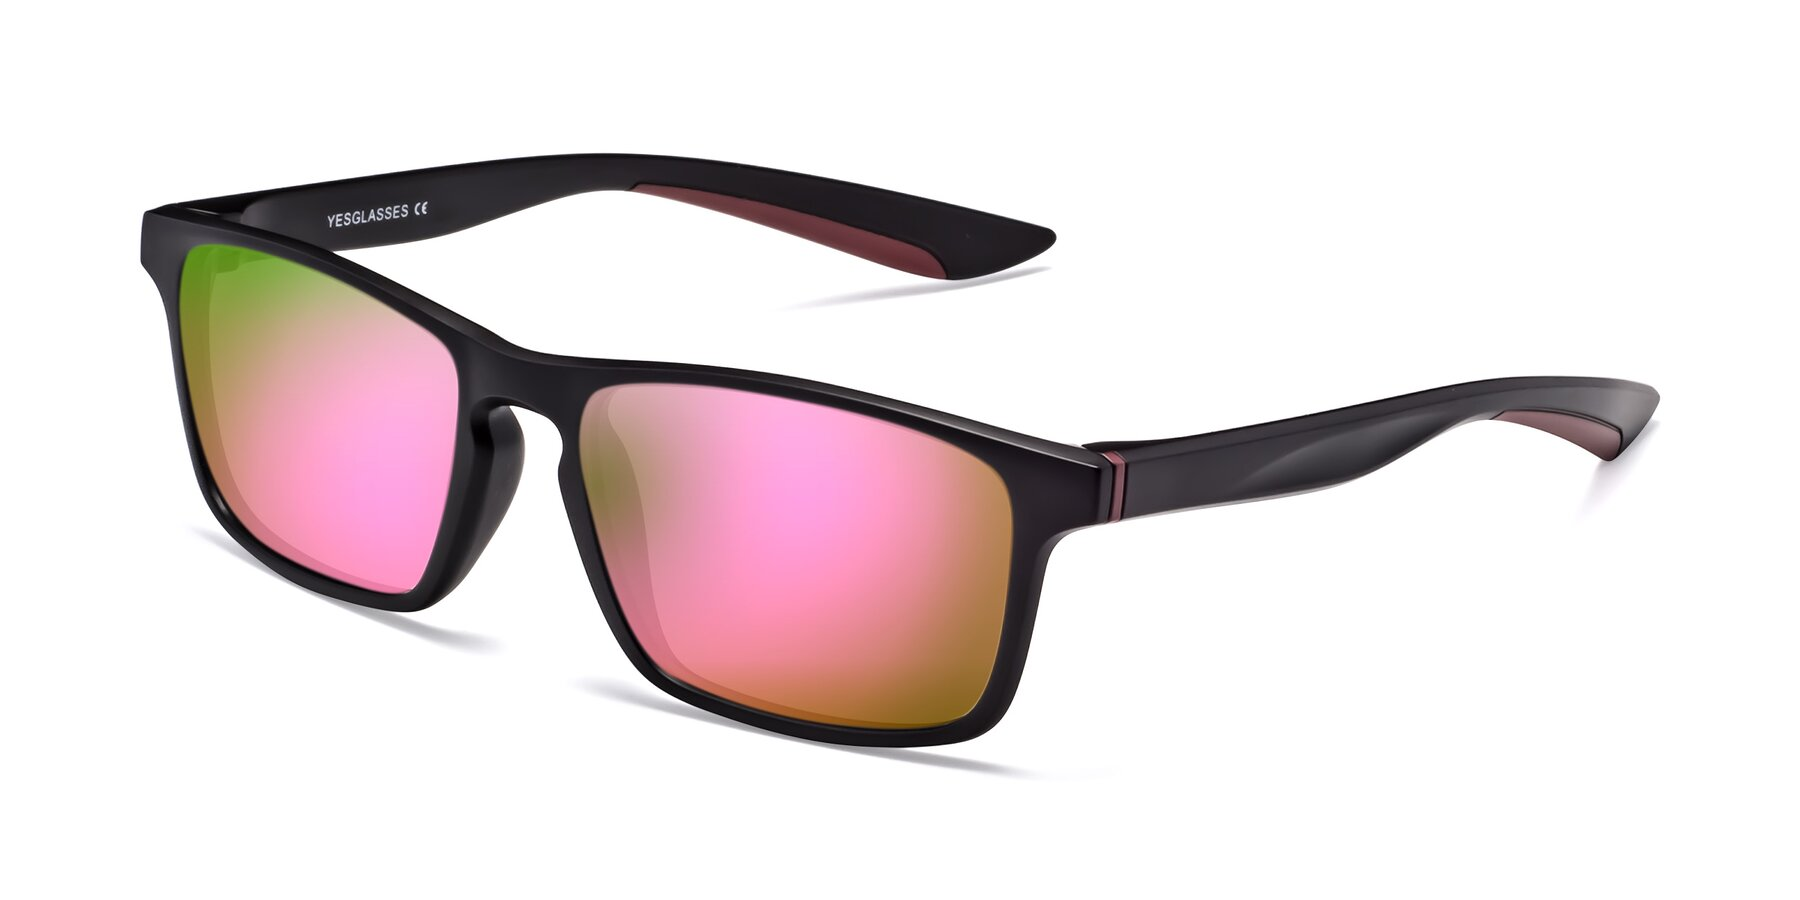 Angle of Passion in Matte Black-Wine with Pink Mirrored Lenses